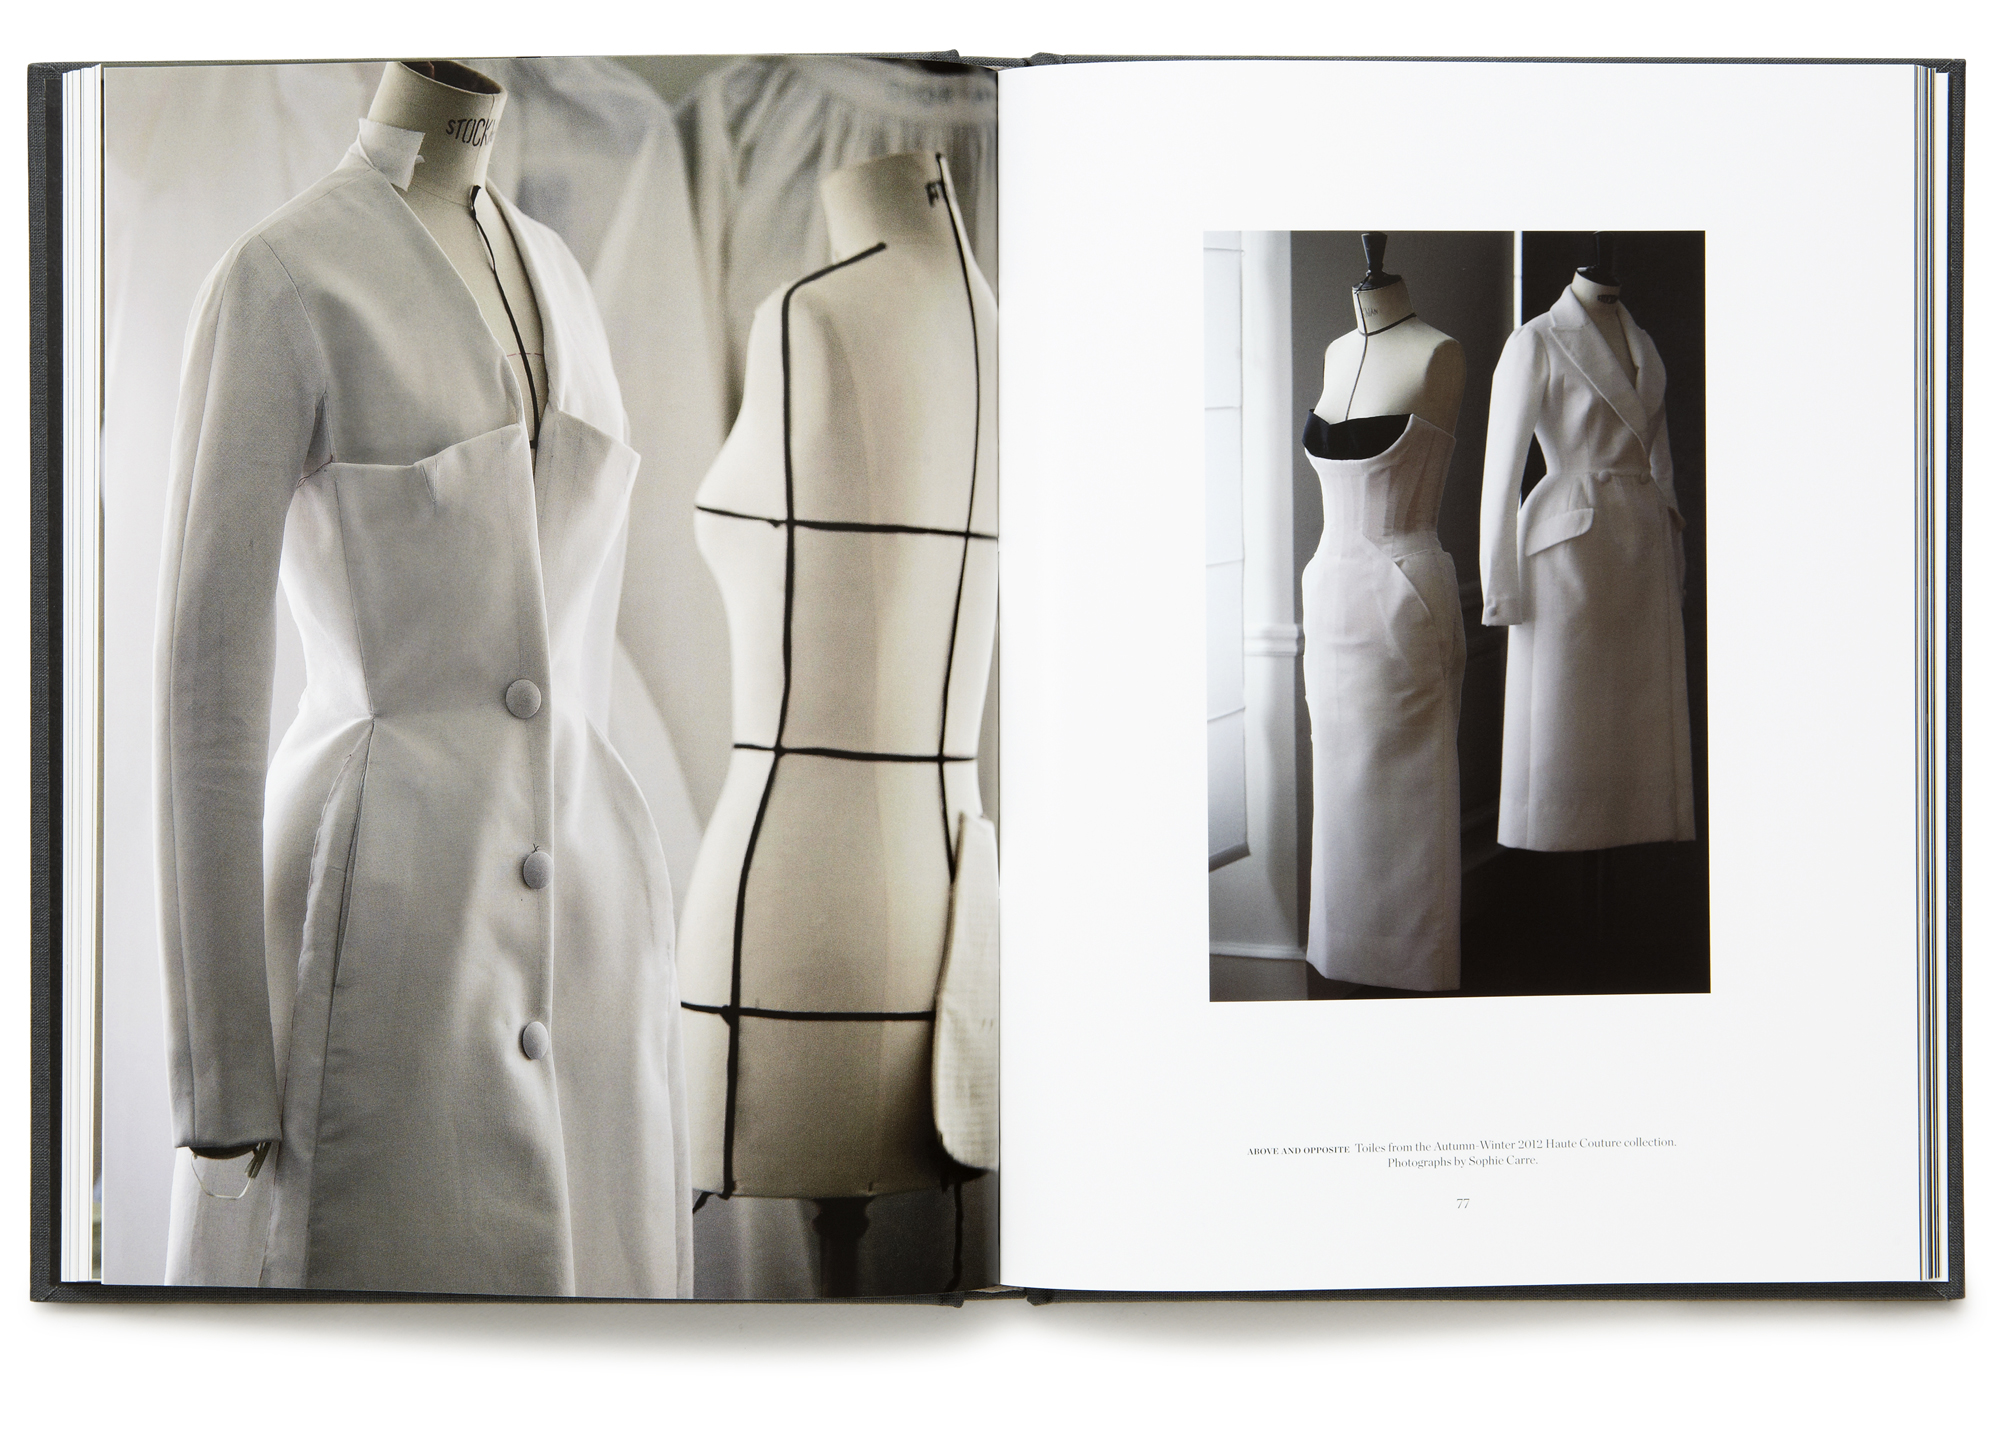 Daniel Baer – Dior&nbsp;&ndash;&nbsp;The&nbsp;New&nbsp;Look. <i>Rizzoli /&nbsp;Dior</i>